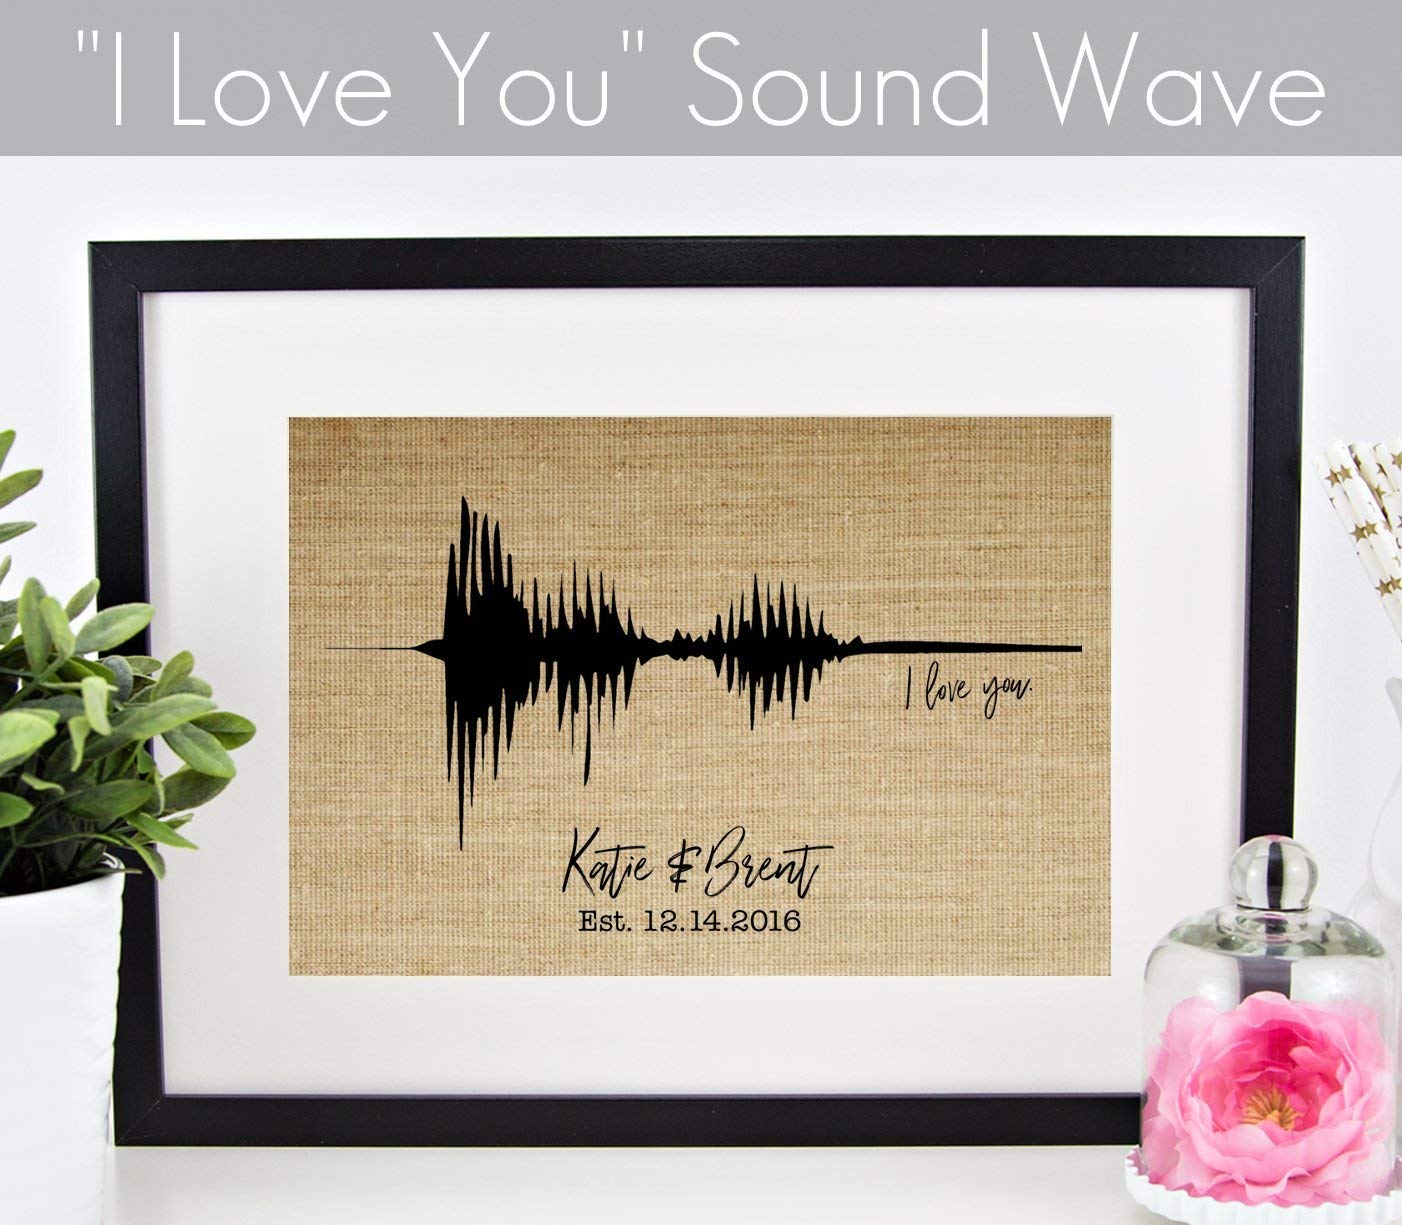 Valentines Day Gift Personalized, Wedding, Anniversary, or Engagement Gift: I Love You Sound Wave Burlap Print